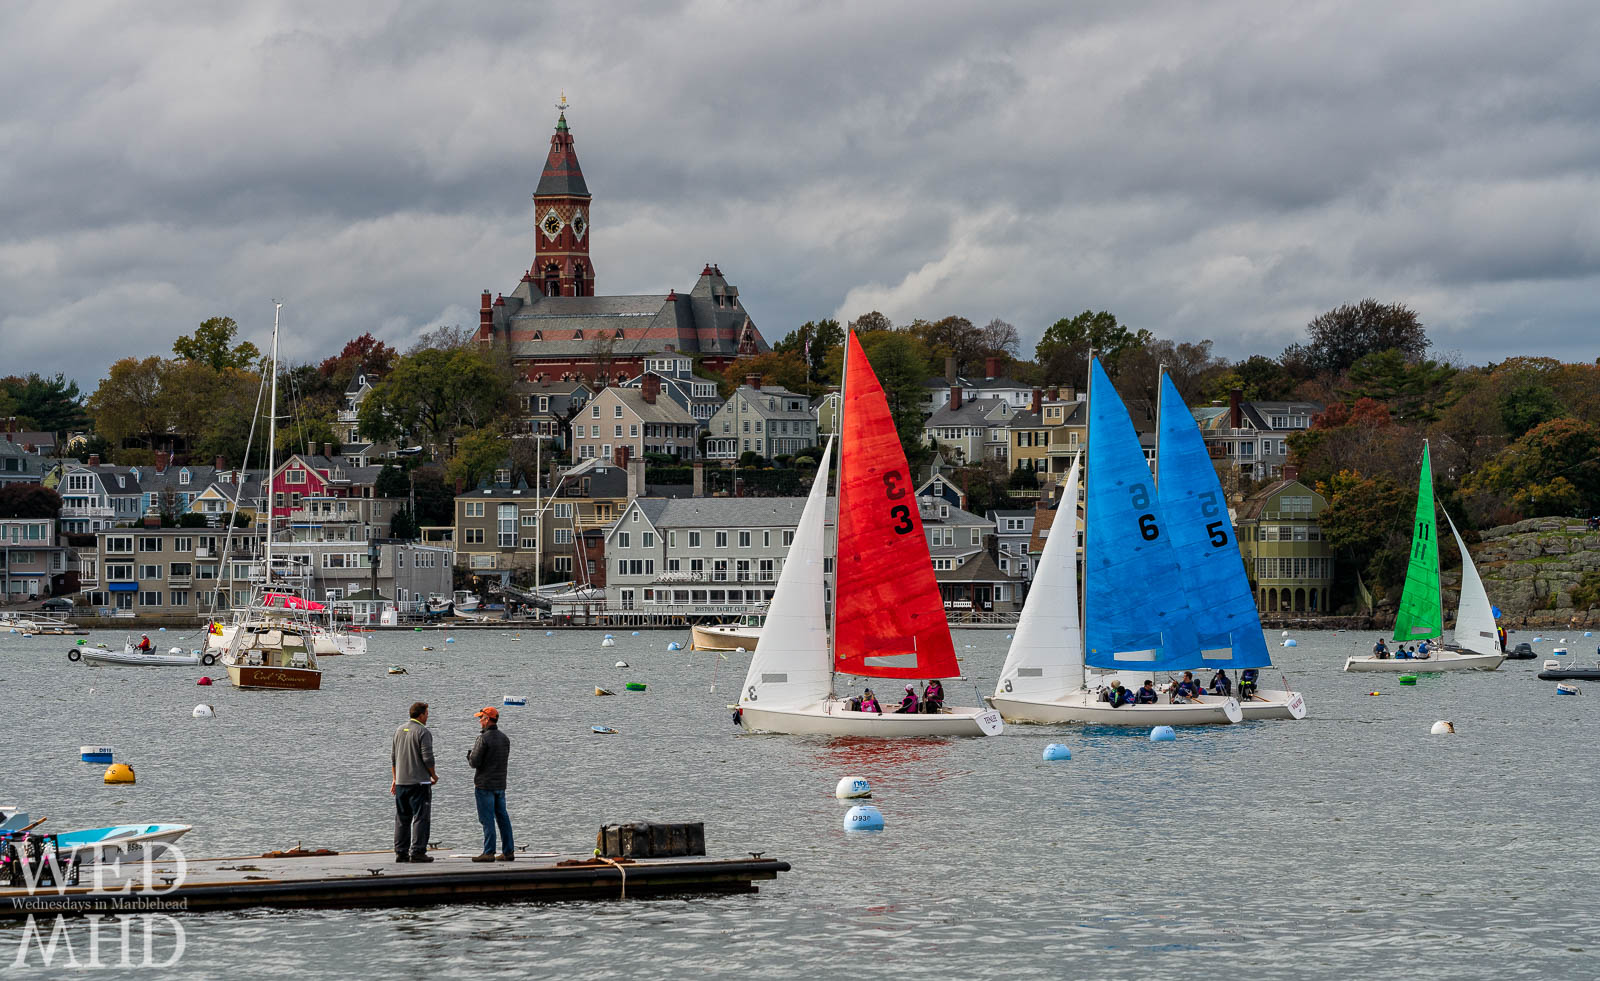 Spectators watch as the boats pass by Abbot Hall during the annual Halloween race in Marblehead Harbor